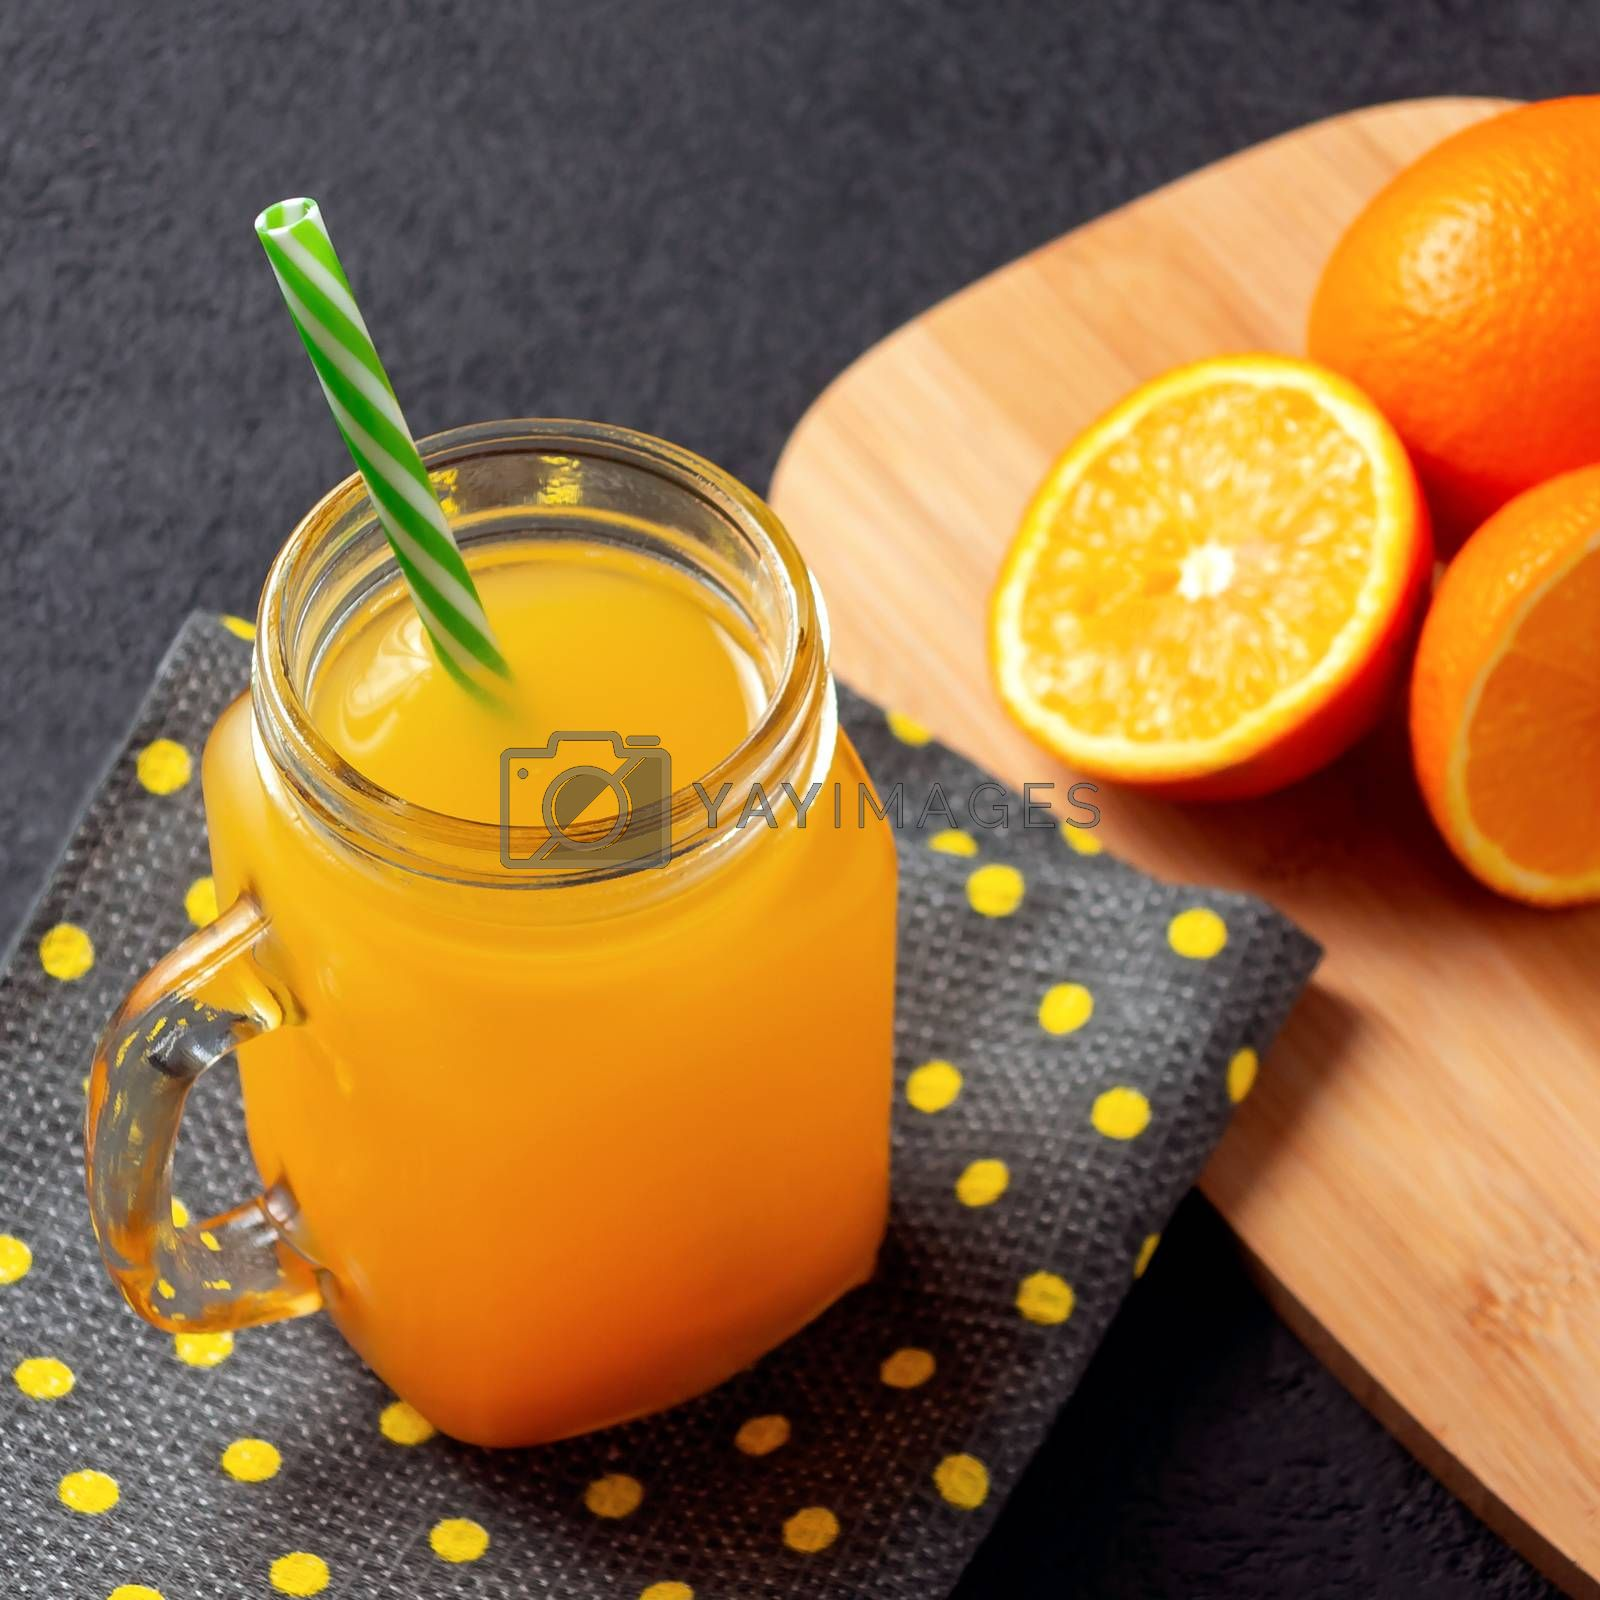 Freshly made citrus juice from oranges, grapefruit and lime in a jar-mug with a straw on black table by galsand